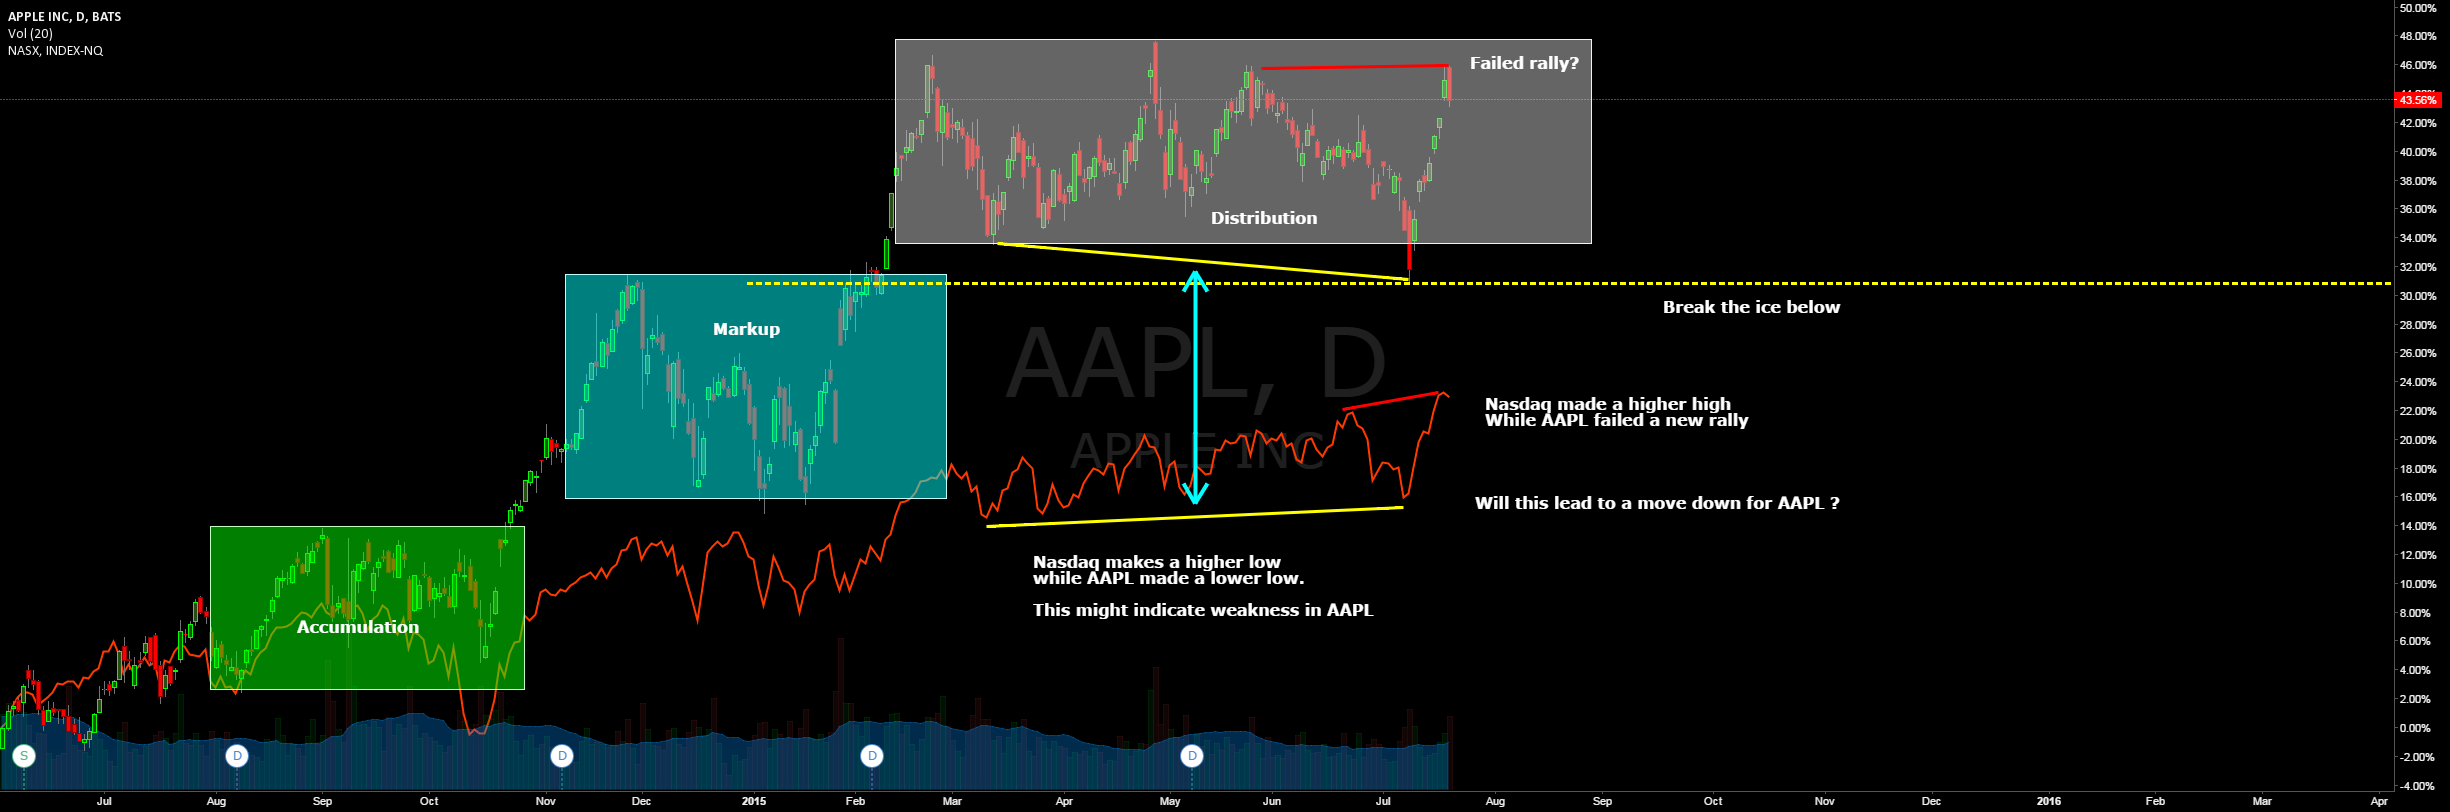 AAPL showing weakness